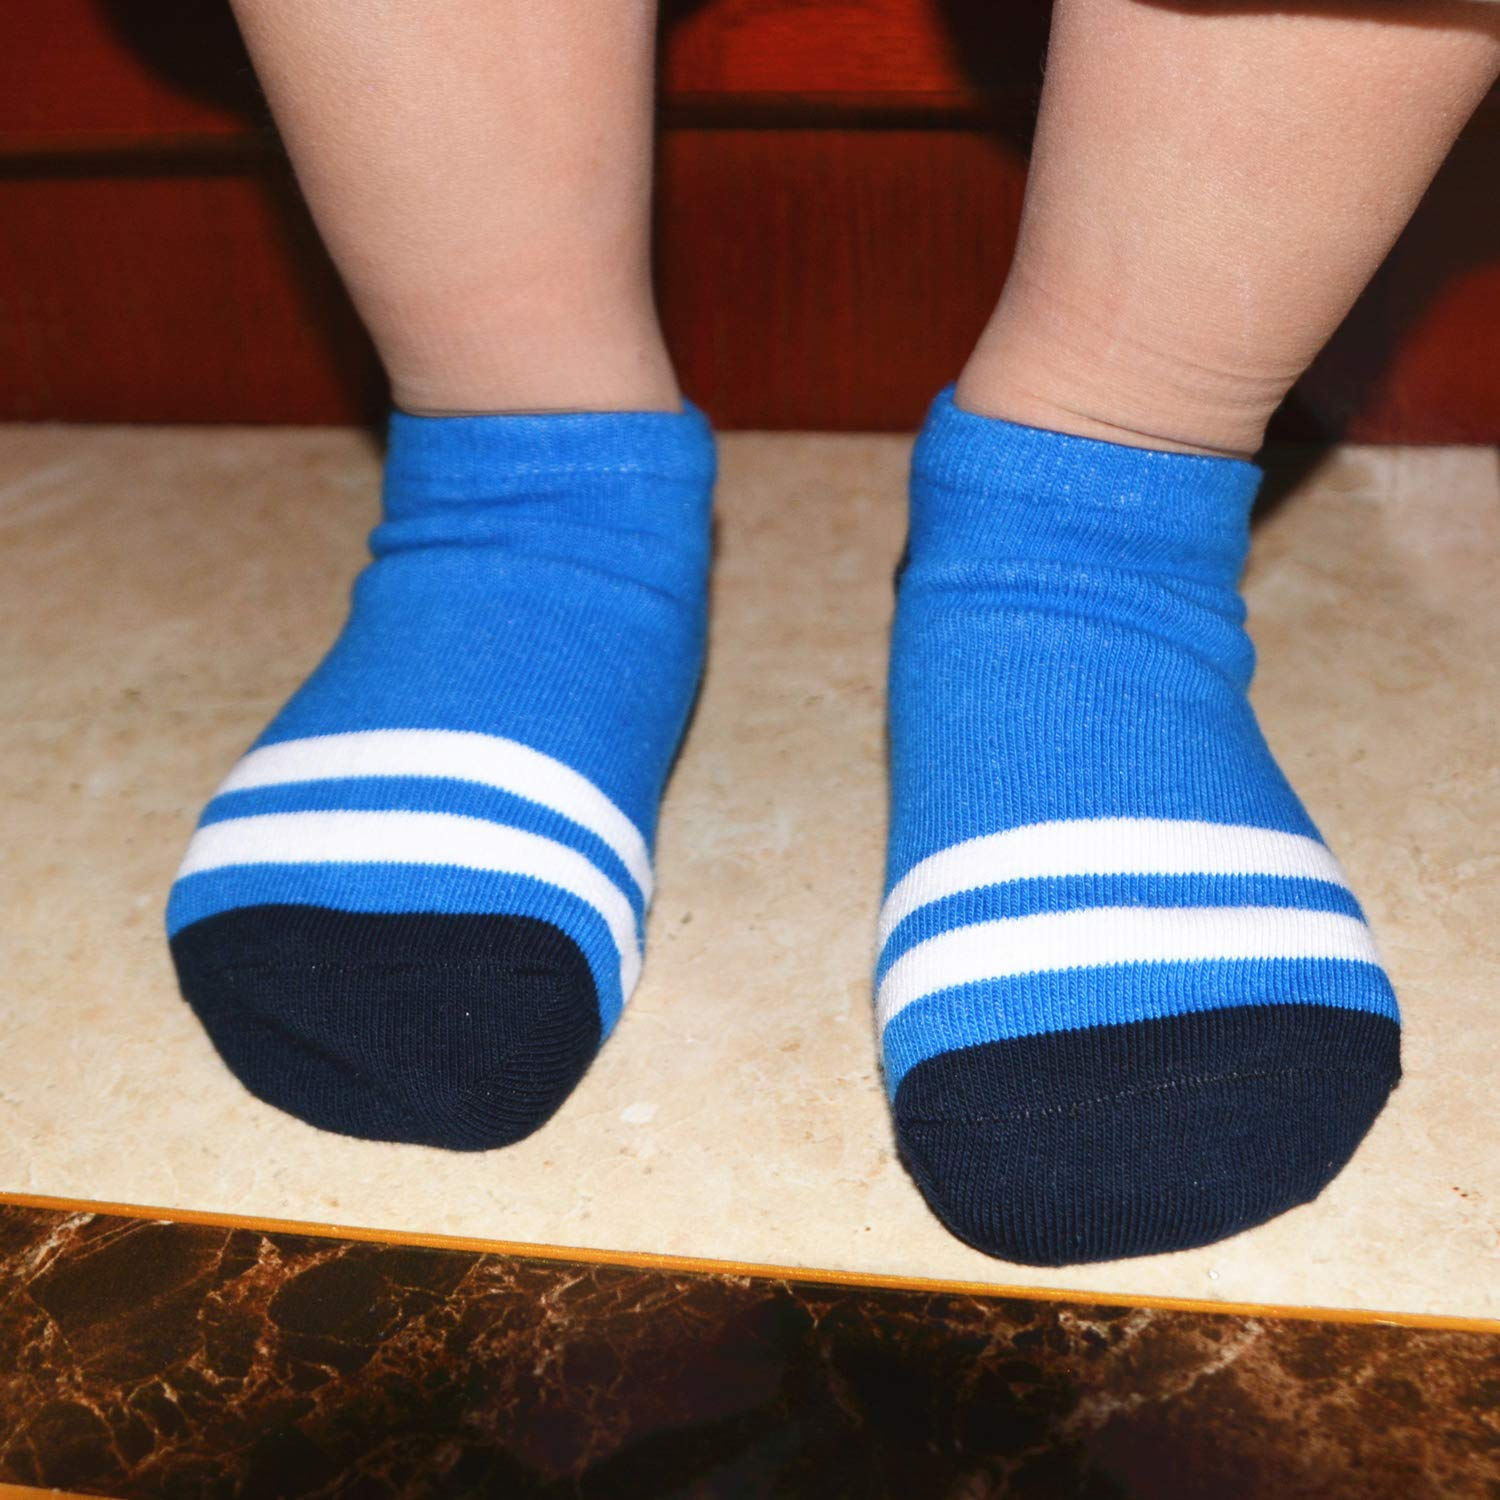 6-Pairs Baby Boys Low Cut Ankle socks Fashion Stripes Cotton No show 2-4T,5-8T